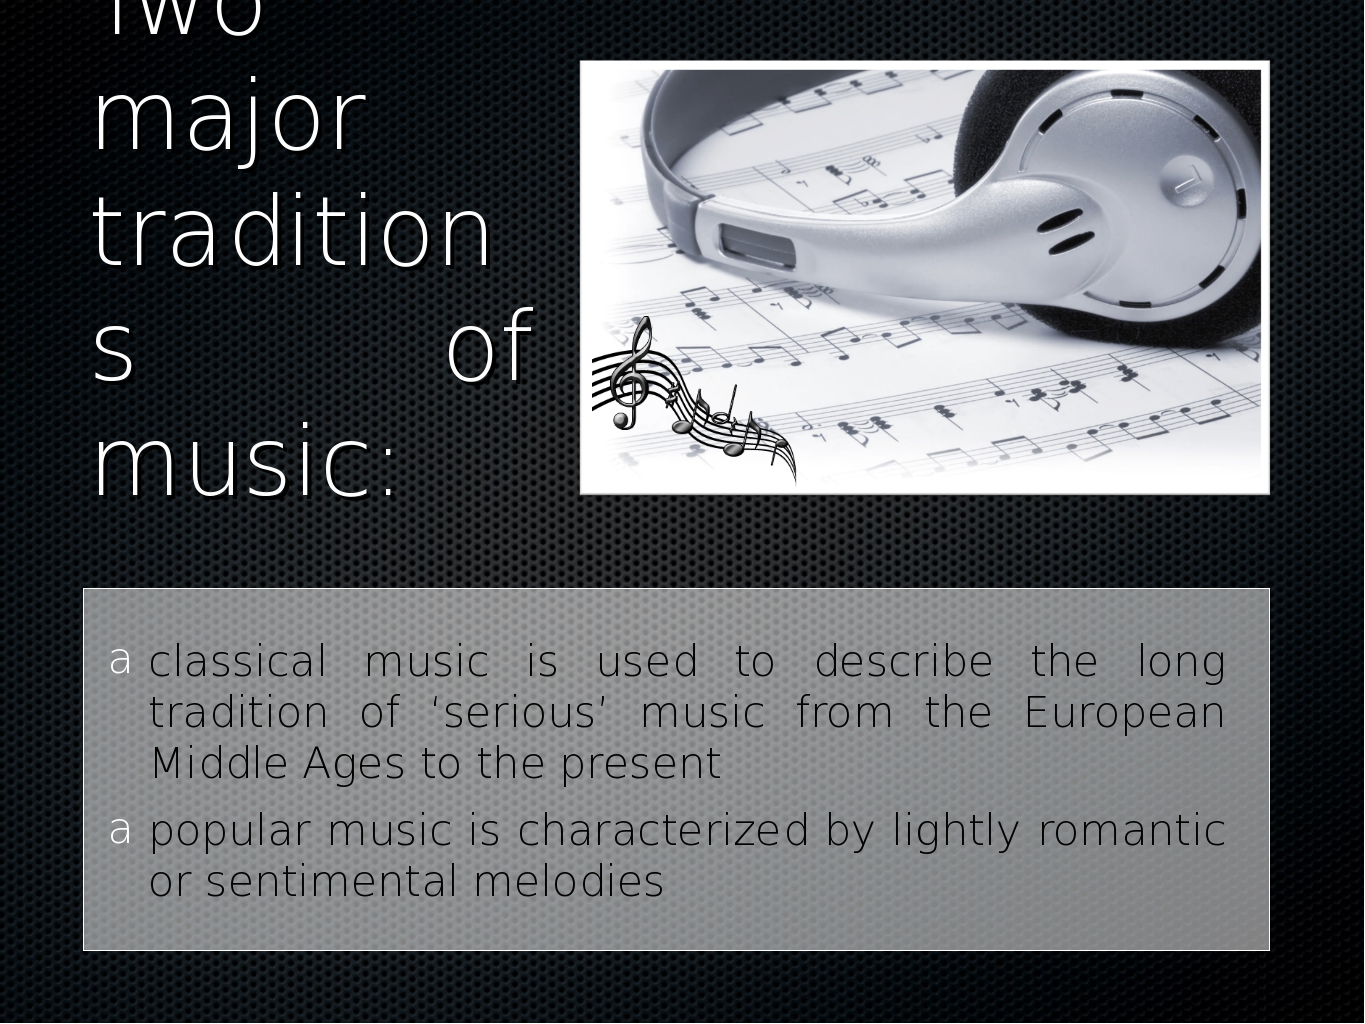 Two major traditions of music: classical music is used to describe the long t...